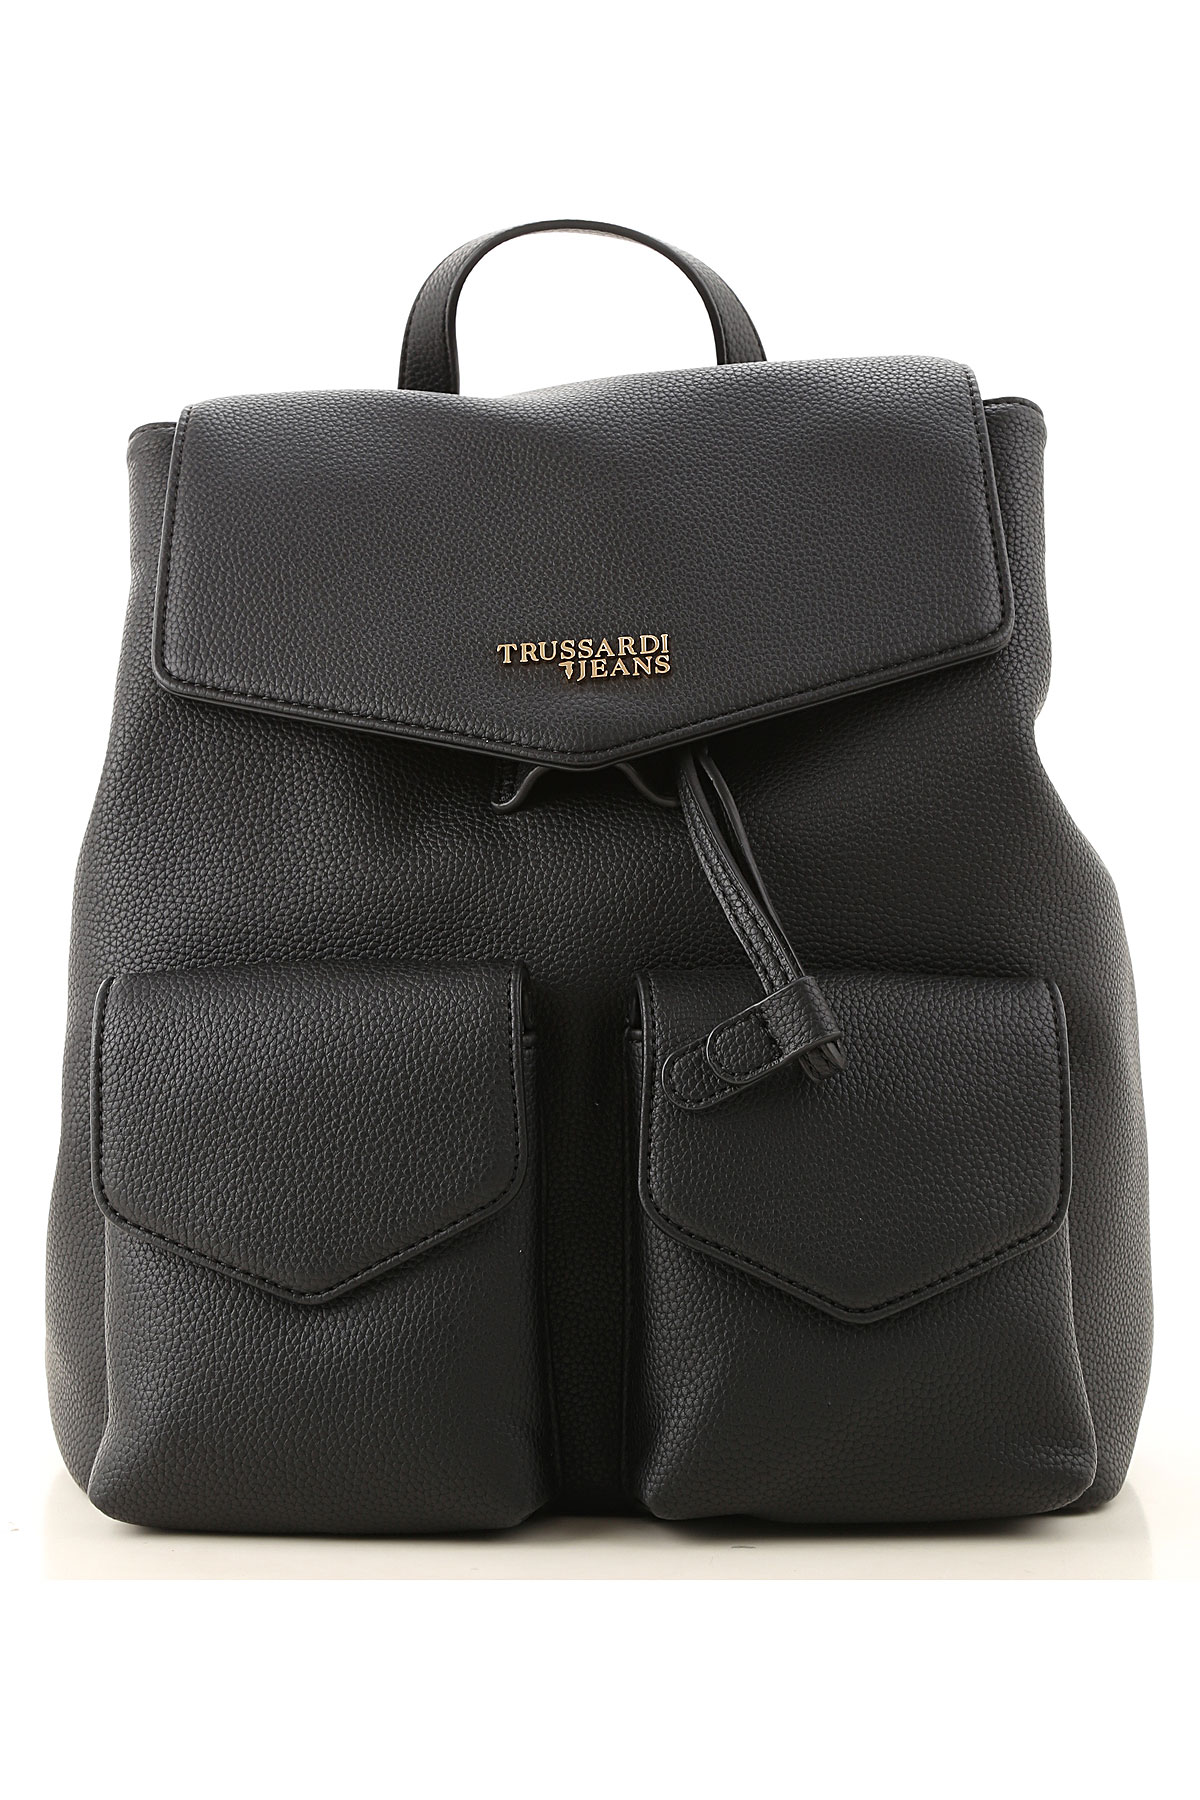 Trussardi Backpack for Women On Sale, Black, Leather, 2019